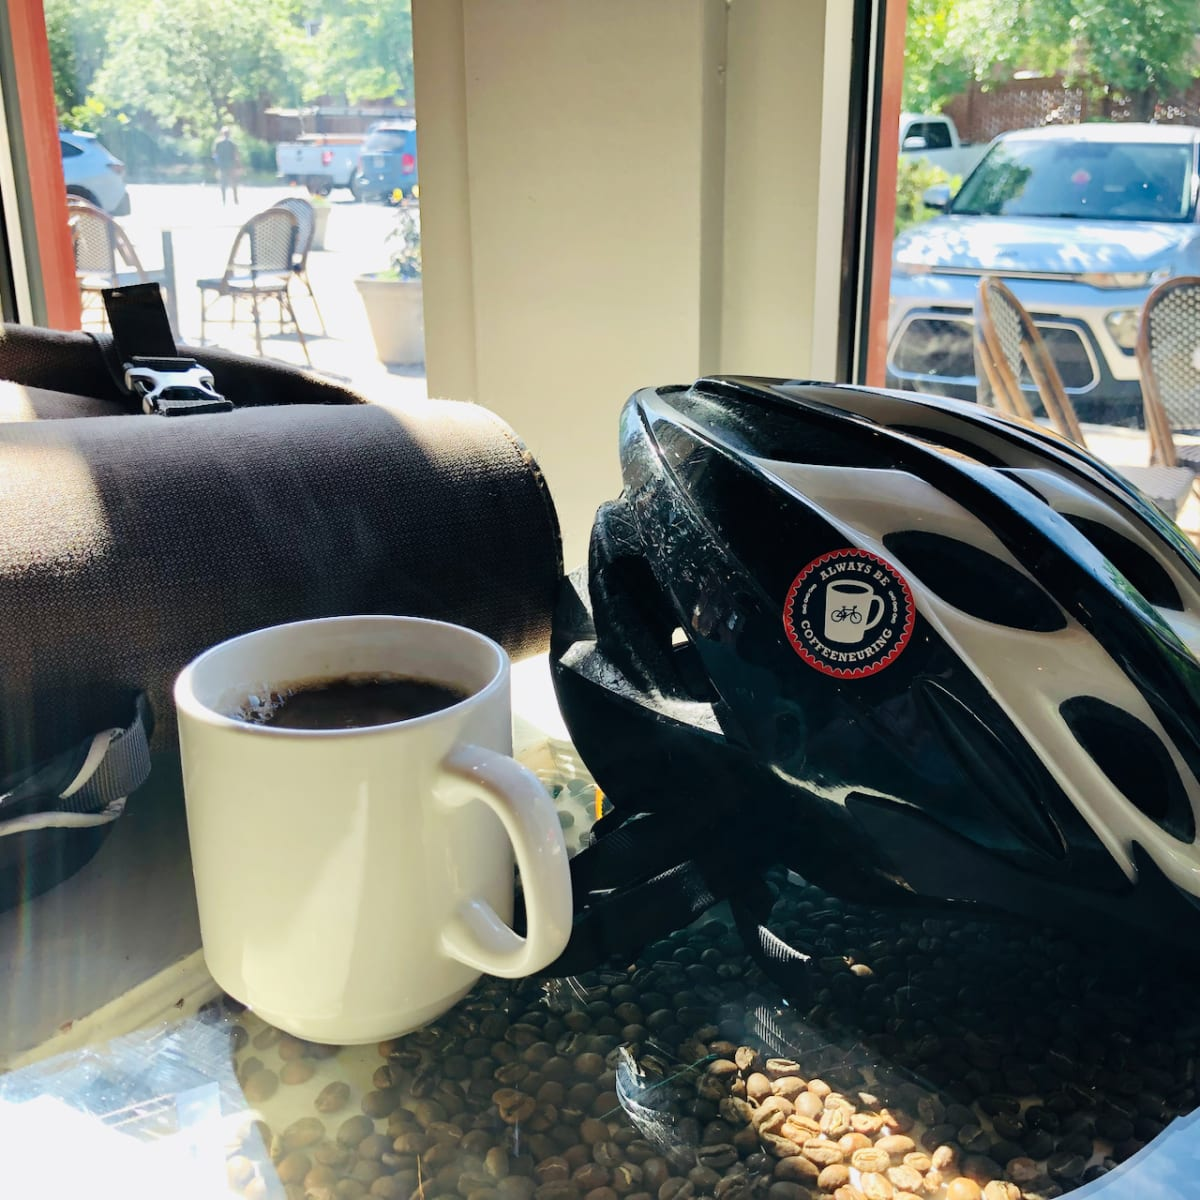 A photo of a coffee cup on a table beside a bicycle helmet.